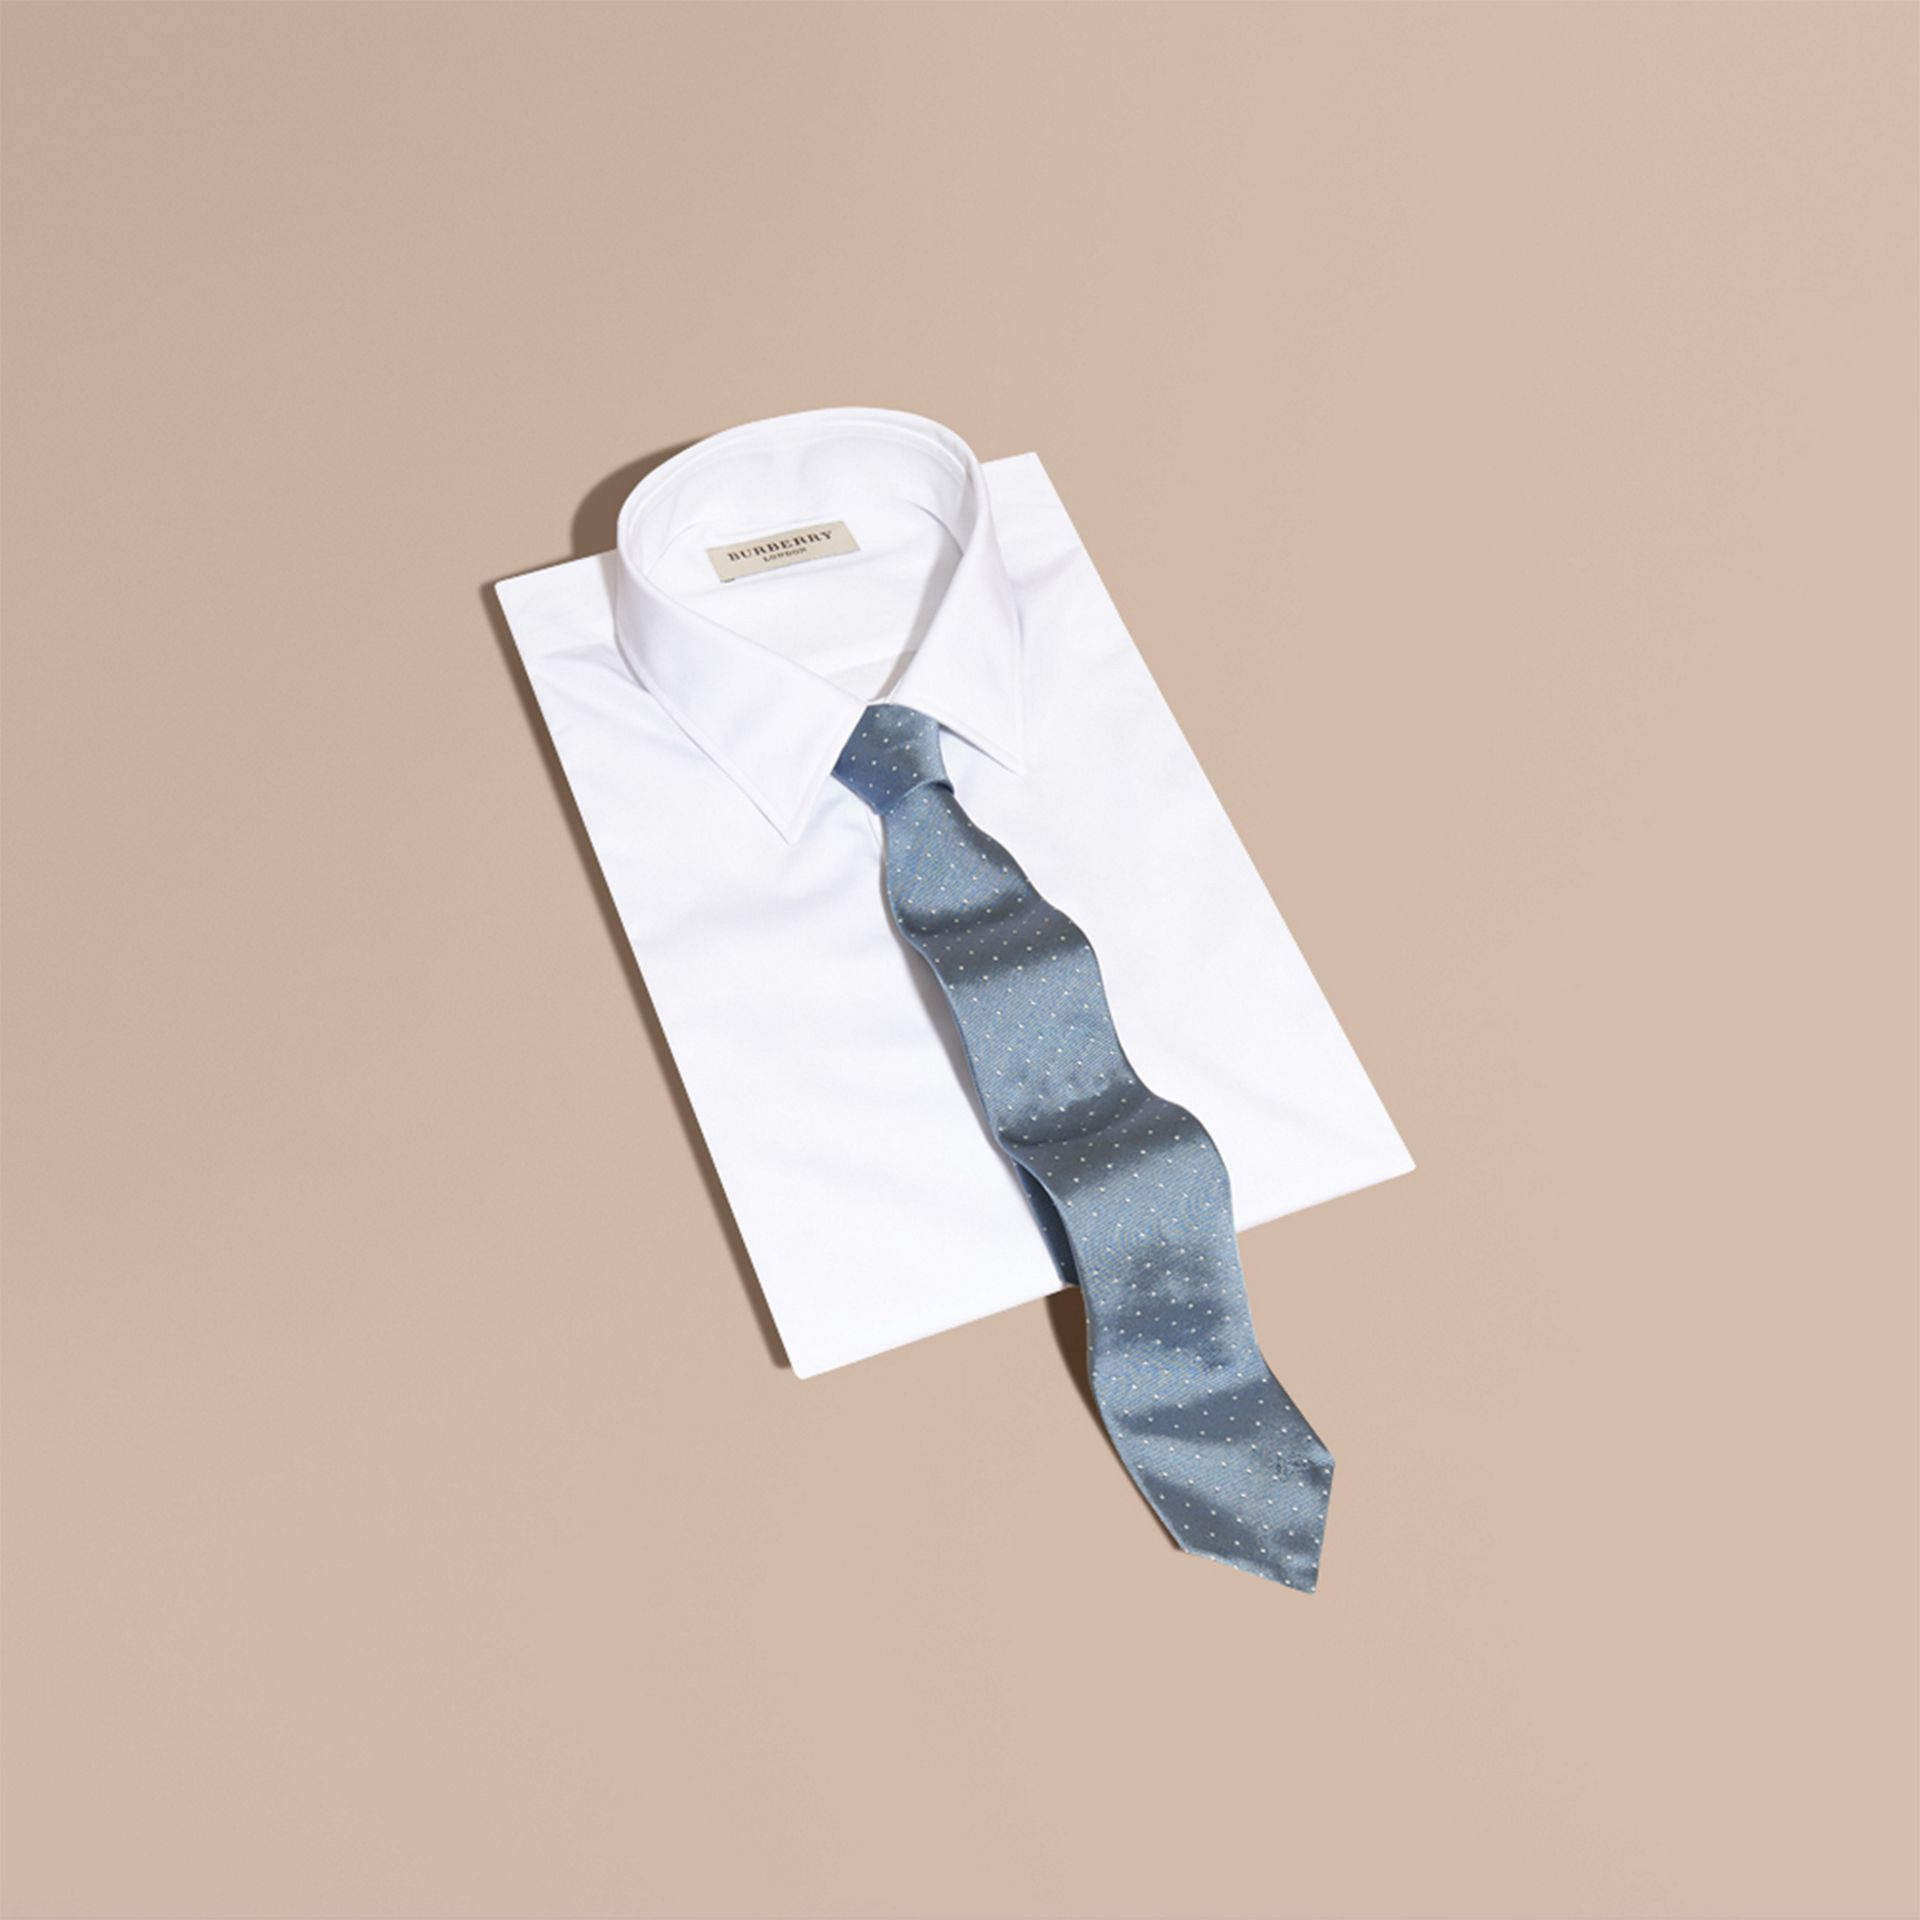 Modern Cut Polka Dot Silk Tie in Light Blue - Men | Burberry - gallery image 4